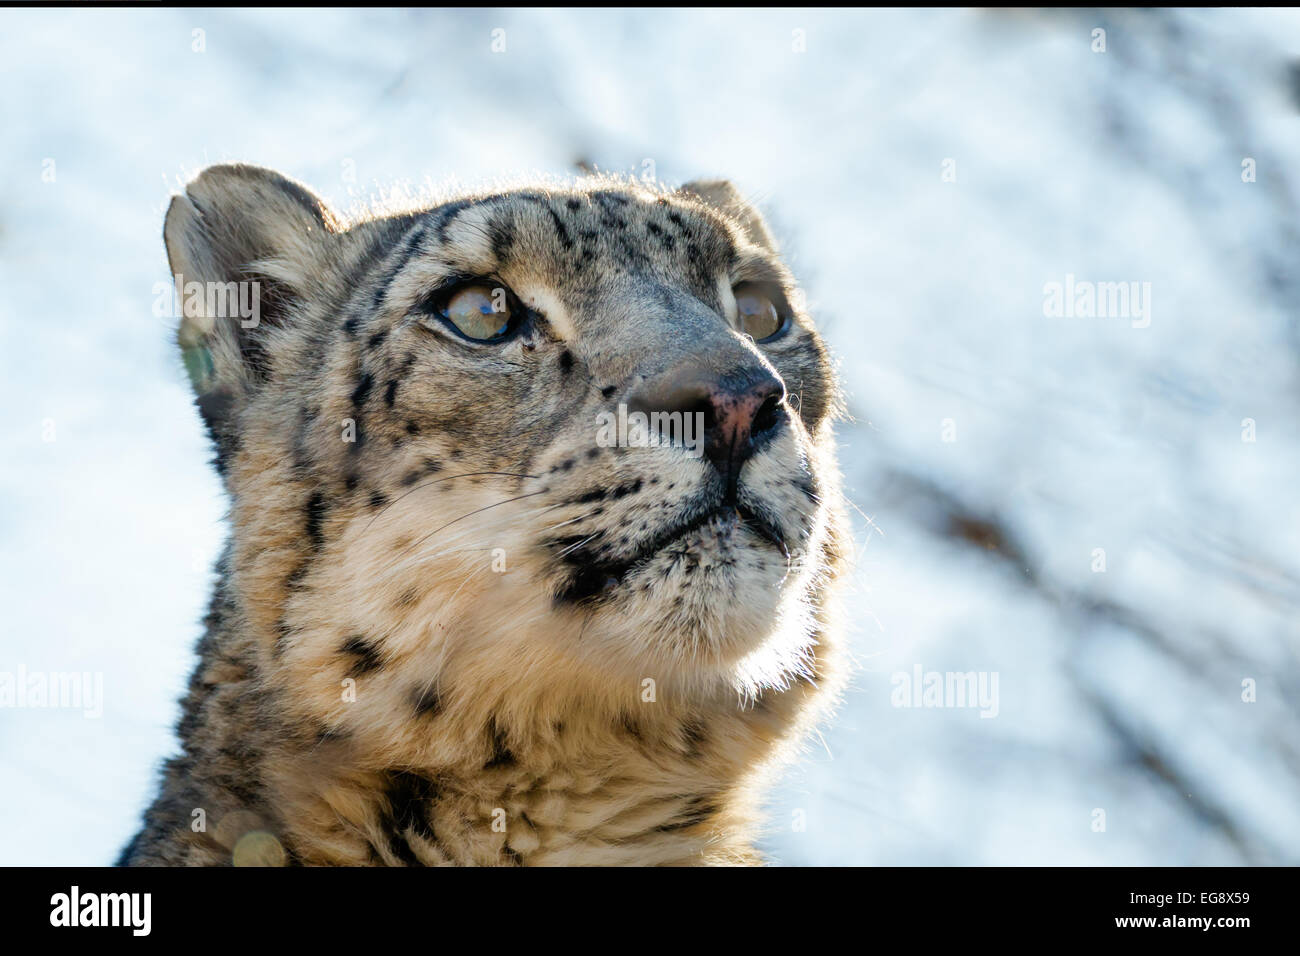 A snow leopard poses menacingly for a portrait in the Oklahoma City Zoo - Stock Image